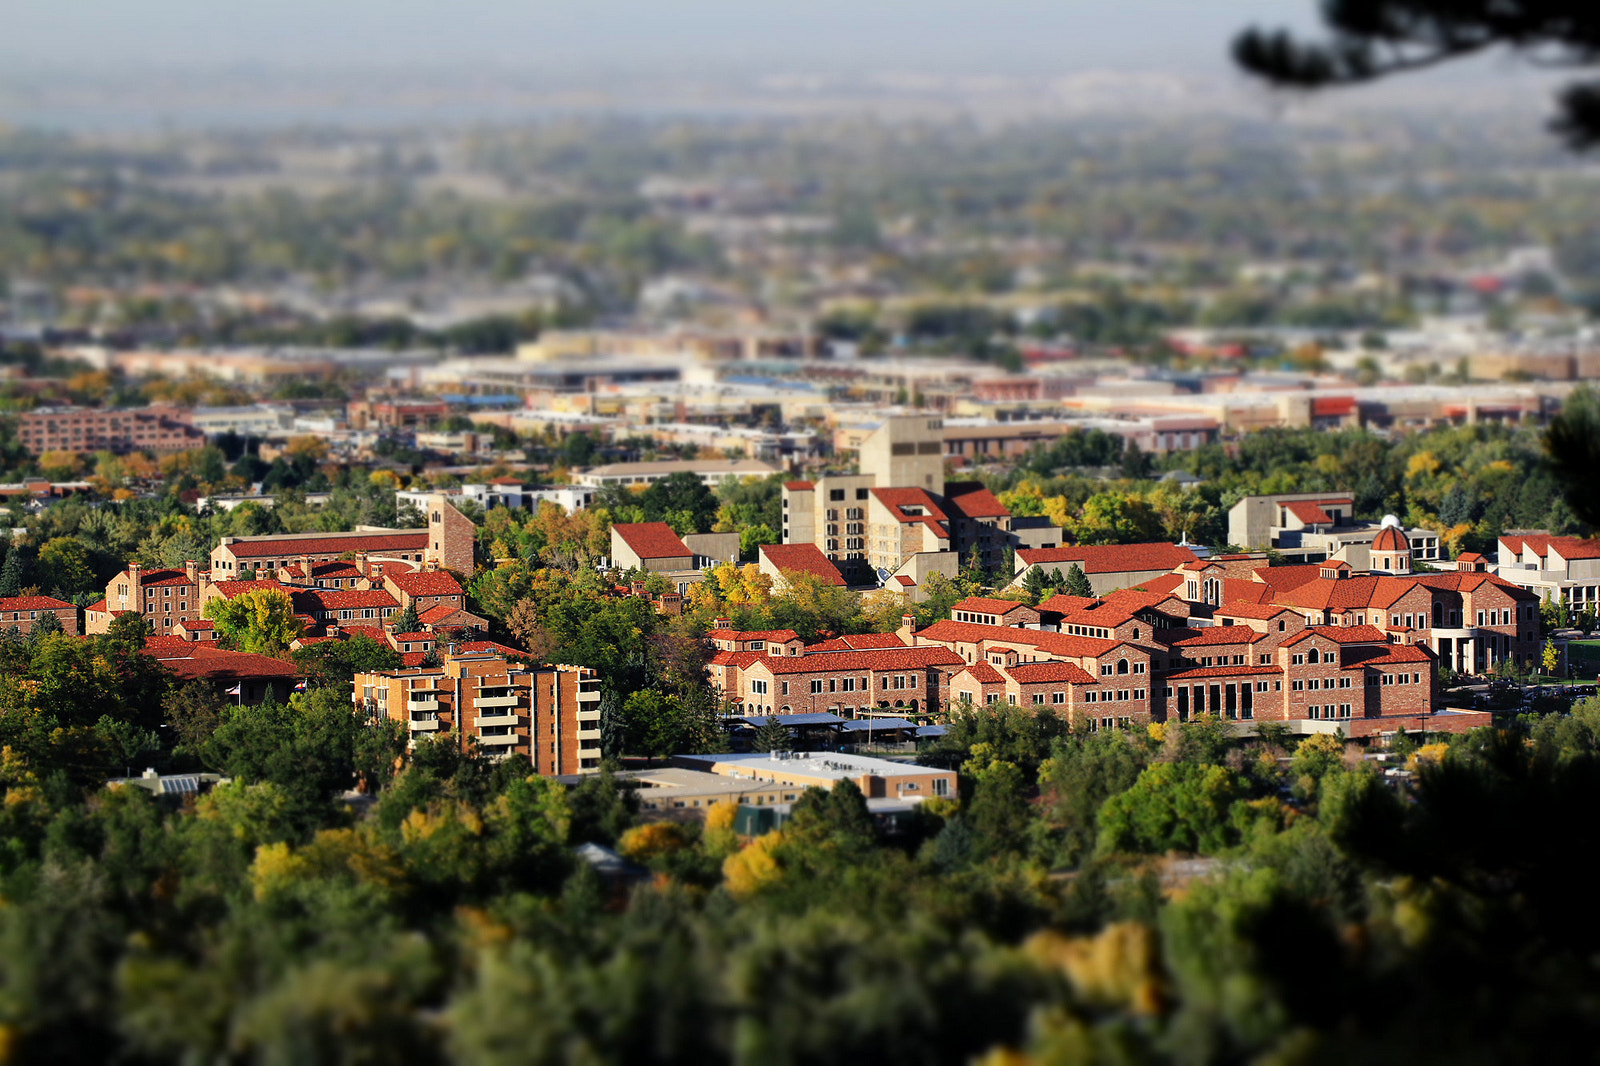 Photograph CU Campus in miniature by Parker Jackson on 500px